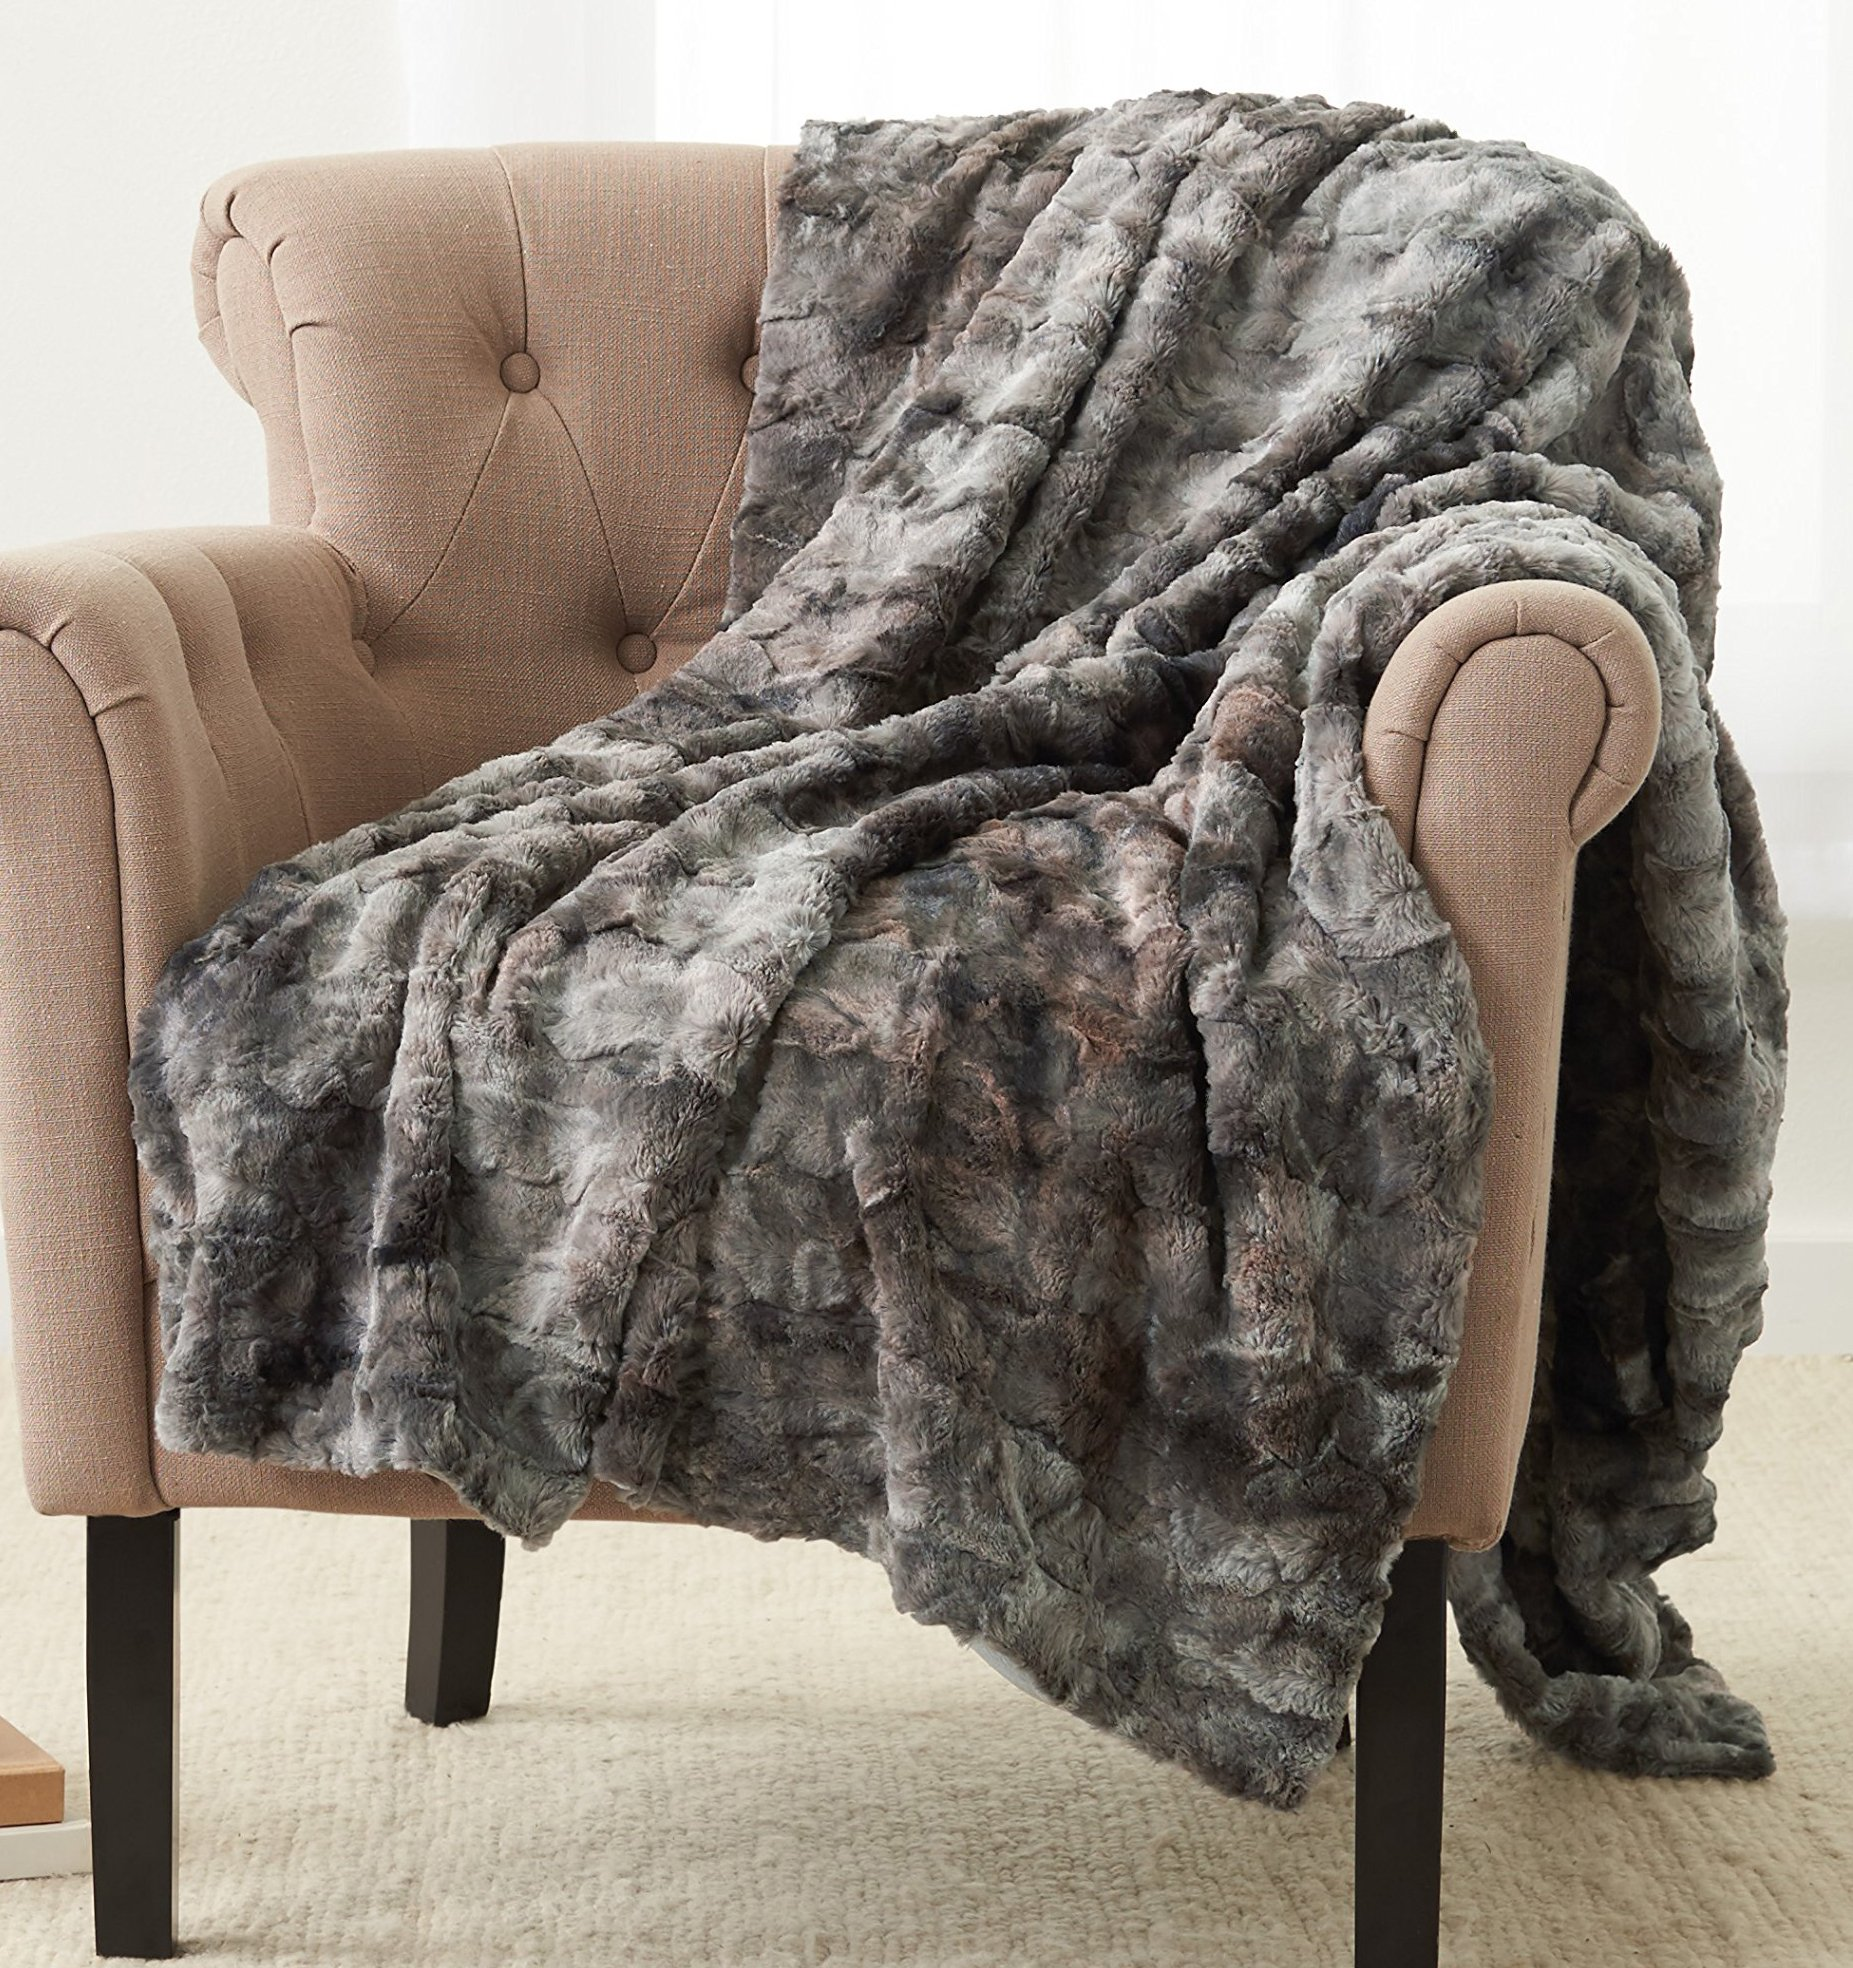 Pinzon Faux Fur Throw Blanket - 63 x 87 Inch, Frost Grey by Pinzon by Amazon